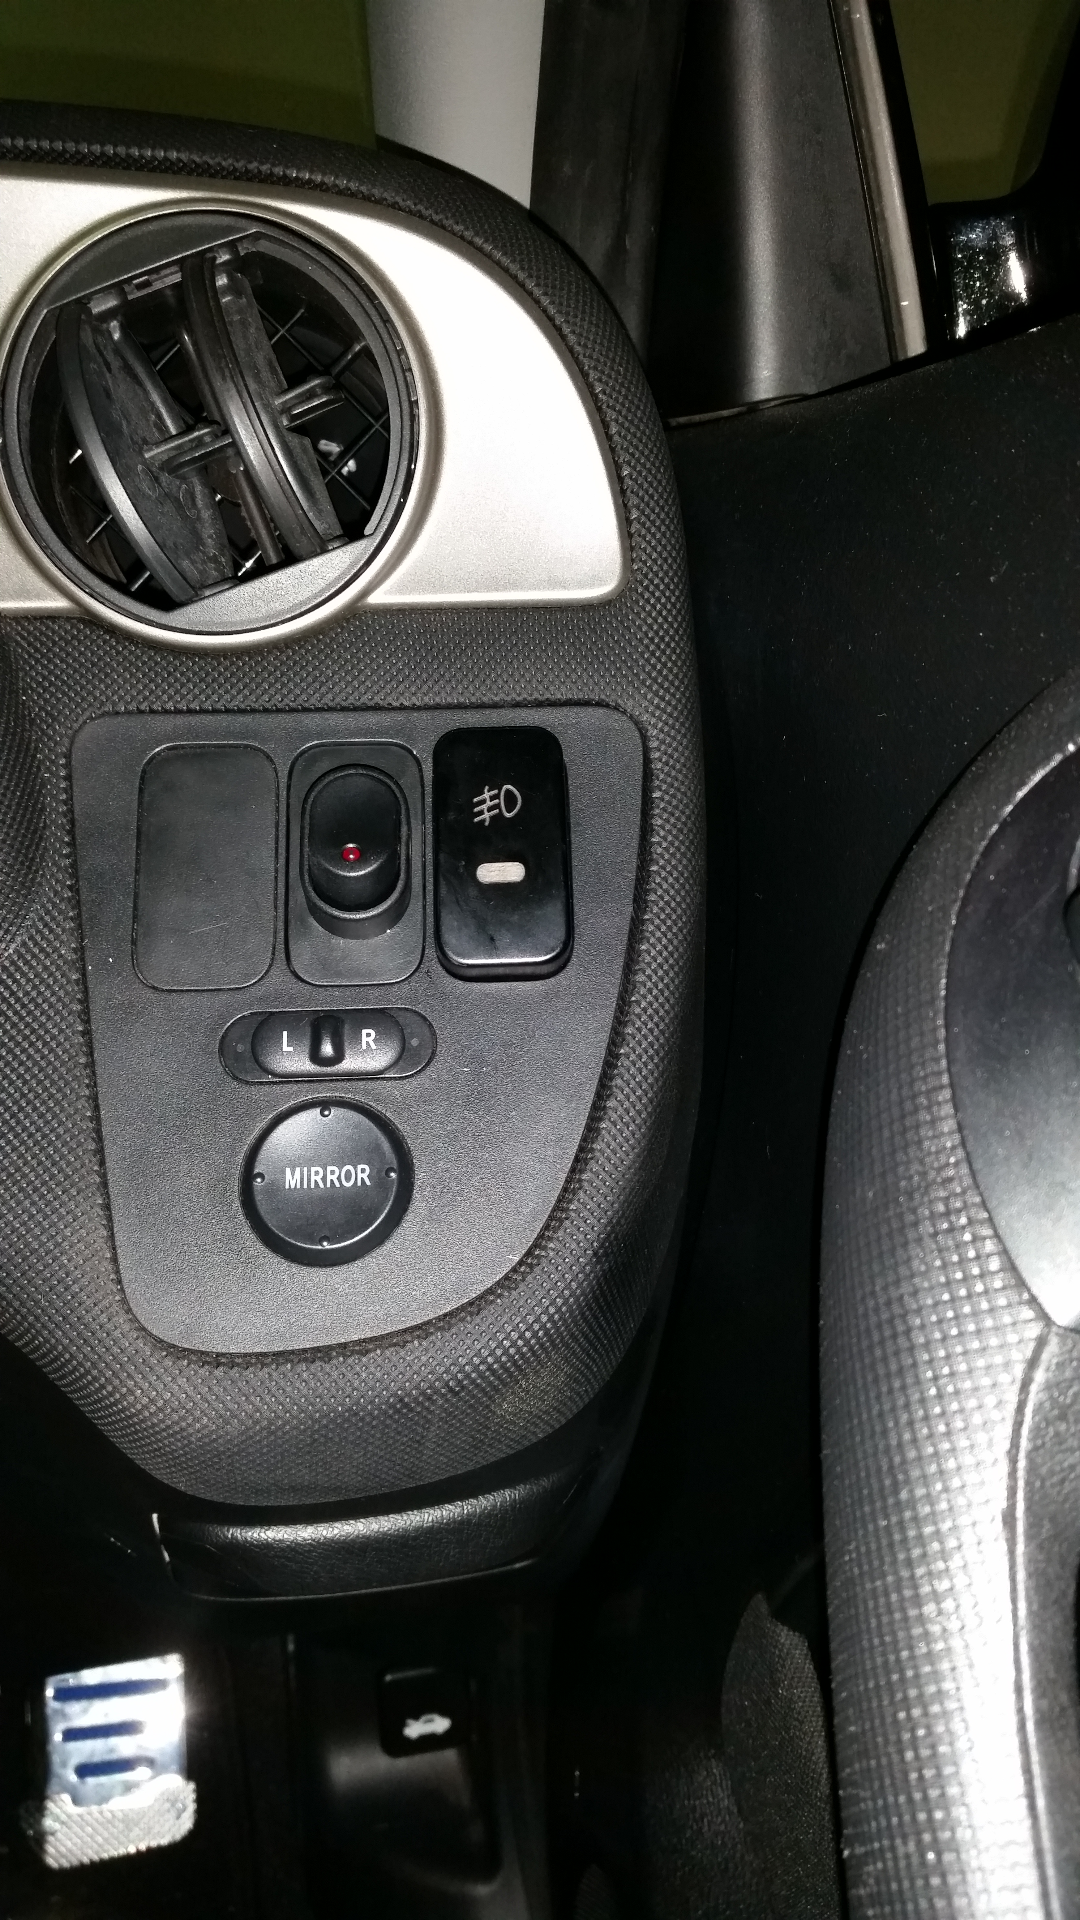 Fog lamps and daytime running lights